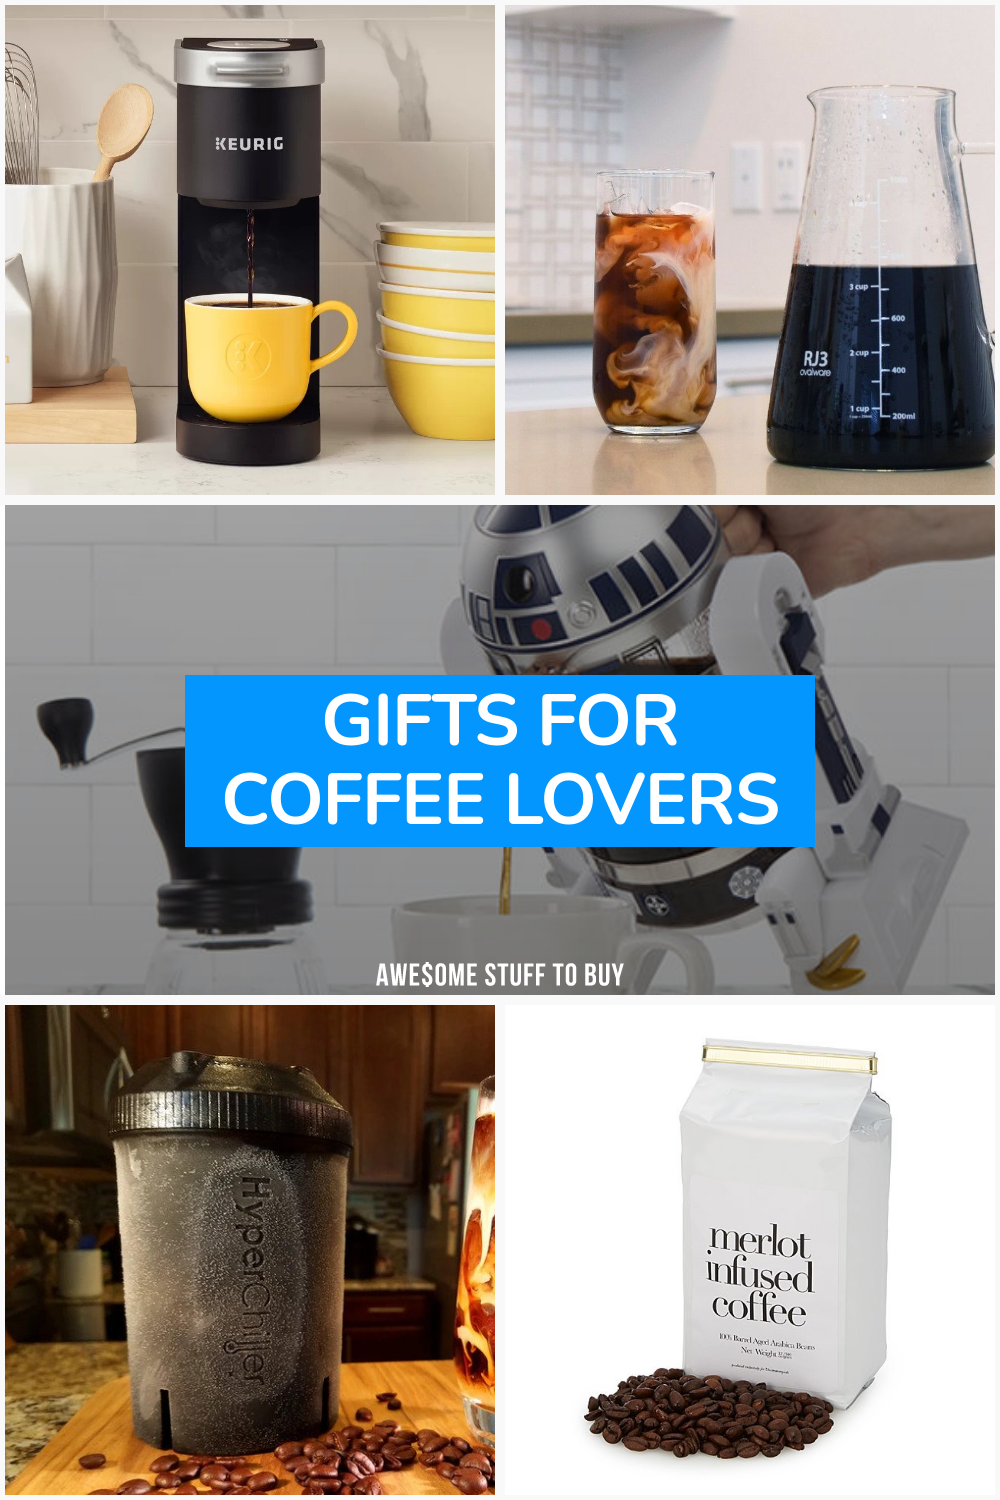 Gifts for Coffee Lovers // Awesome Stuff to Buy